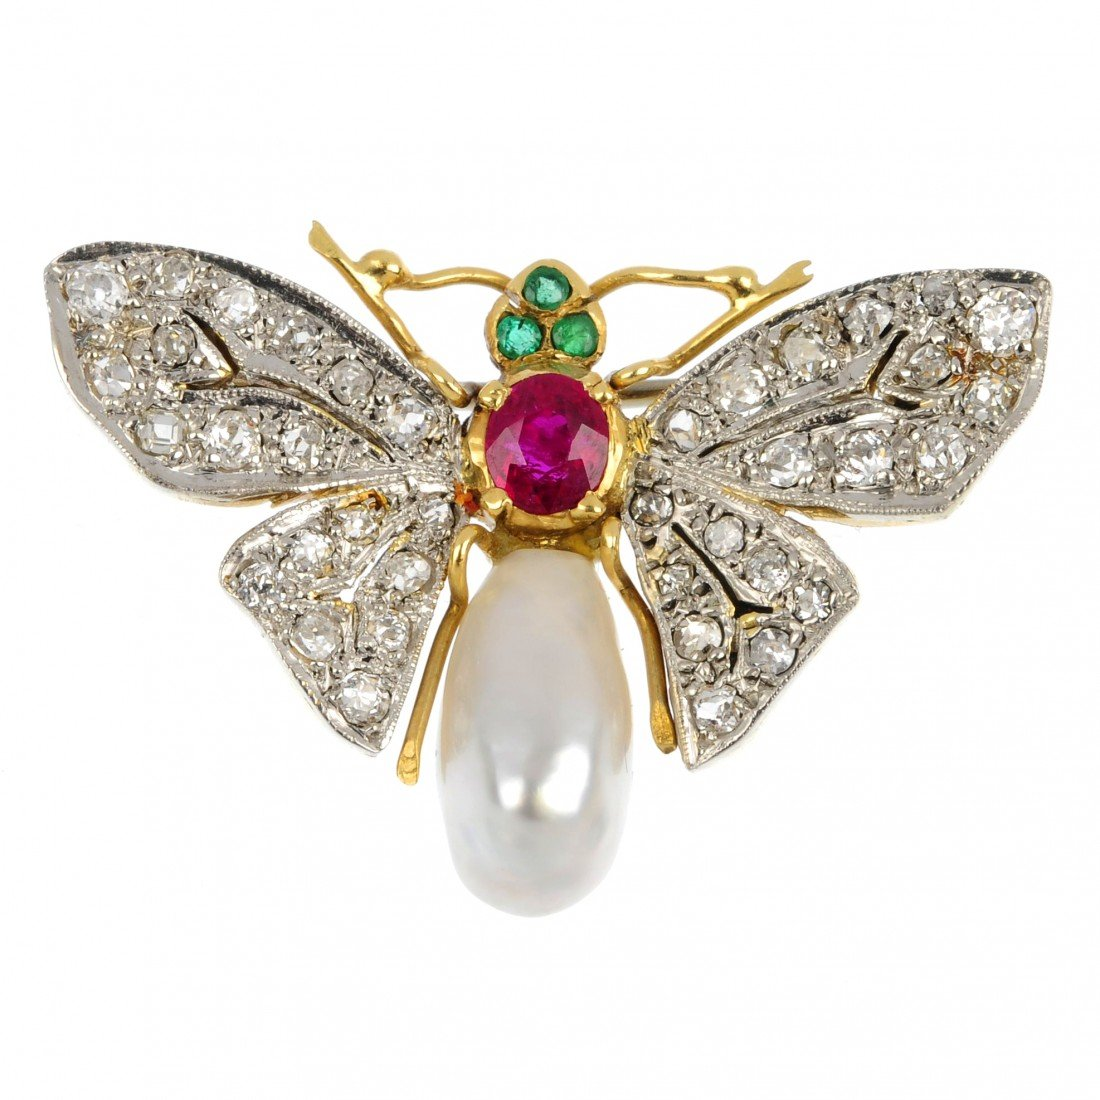 2: A multi-gem fly brooch. The baroque cultured pearl a